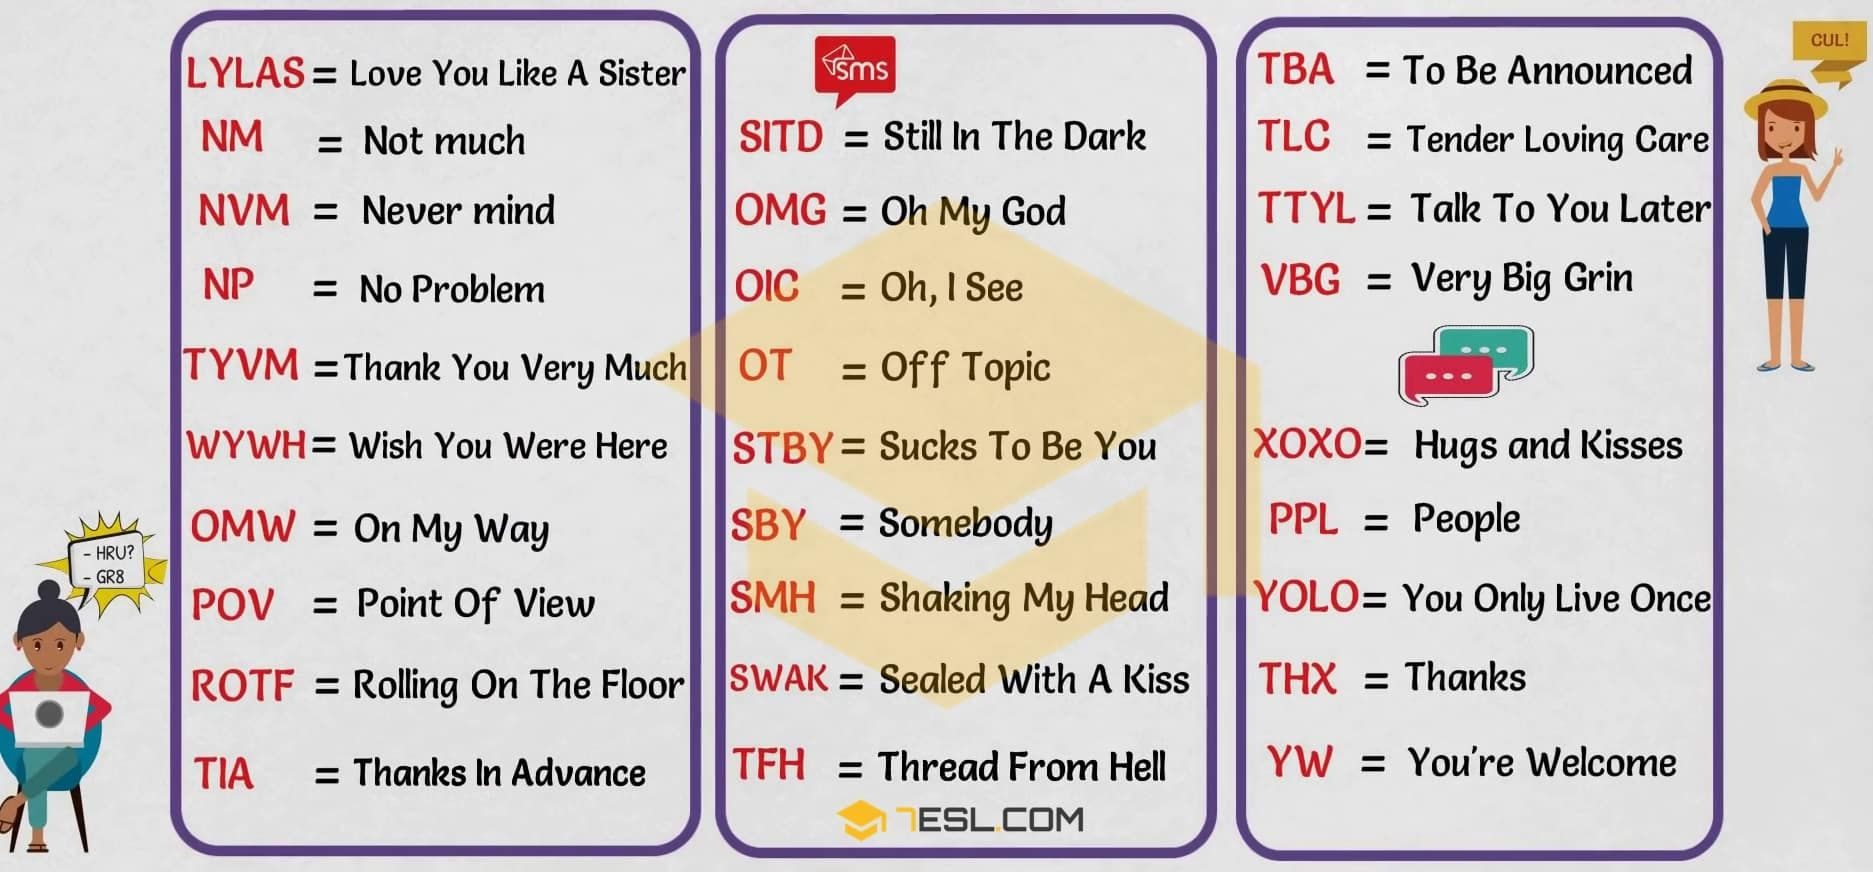 Texting Abbreviations 270+ Popular Text Acronyms In